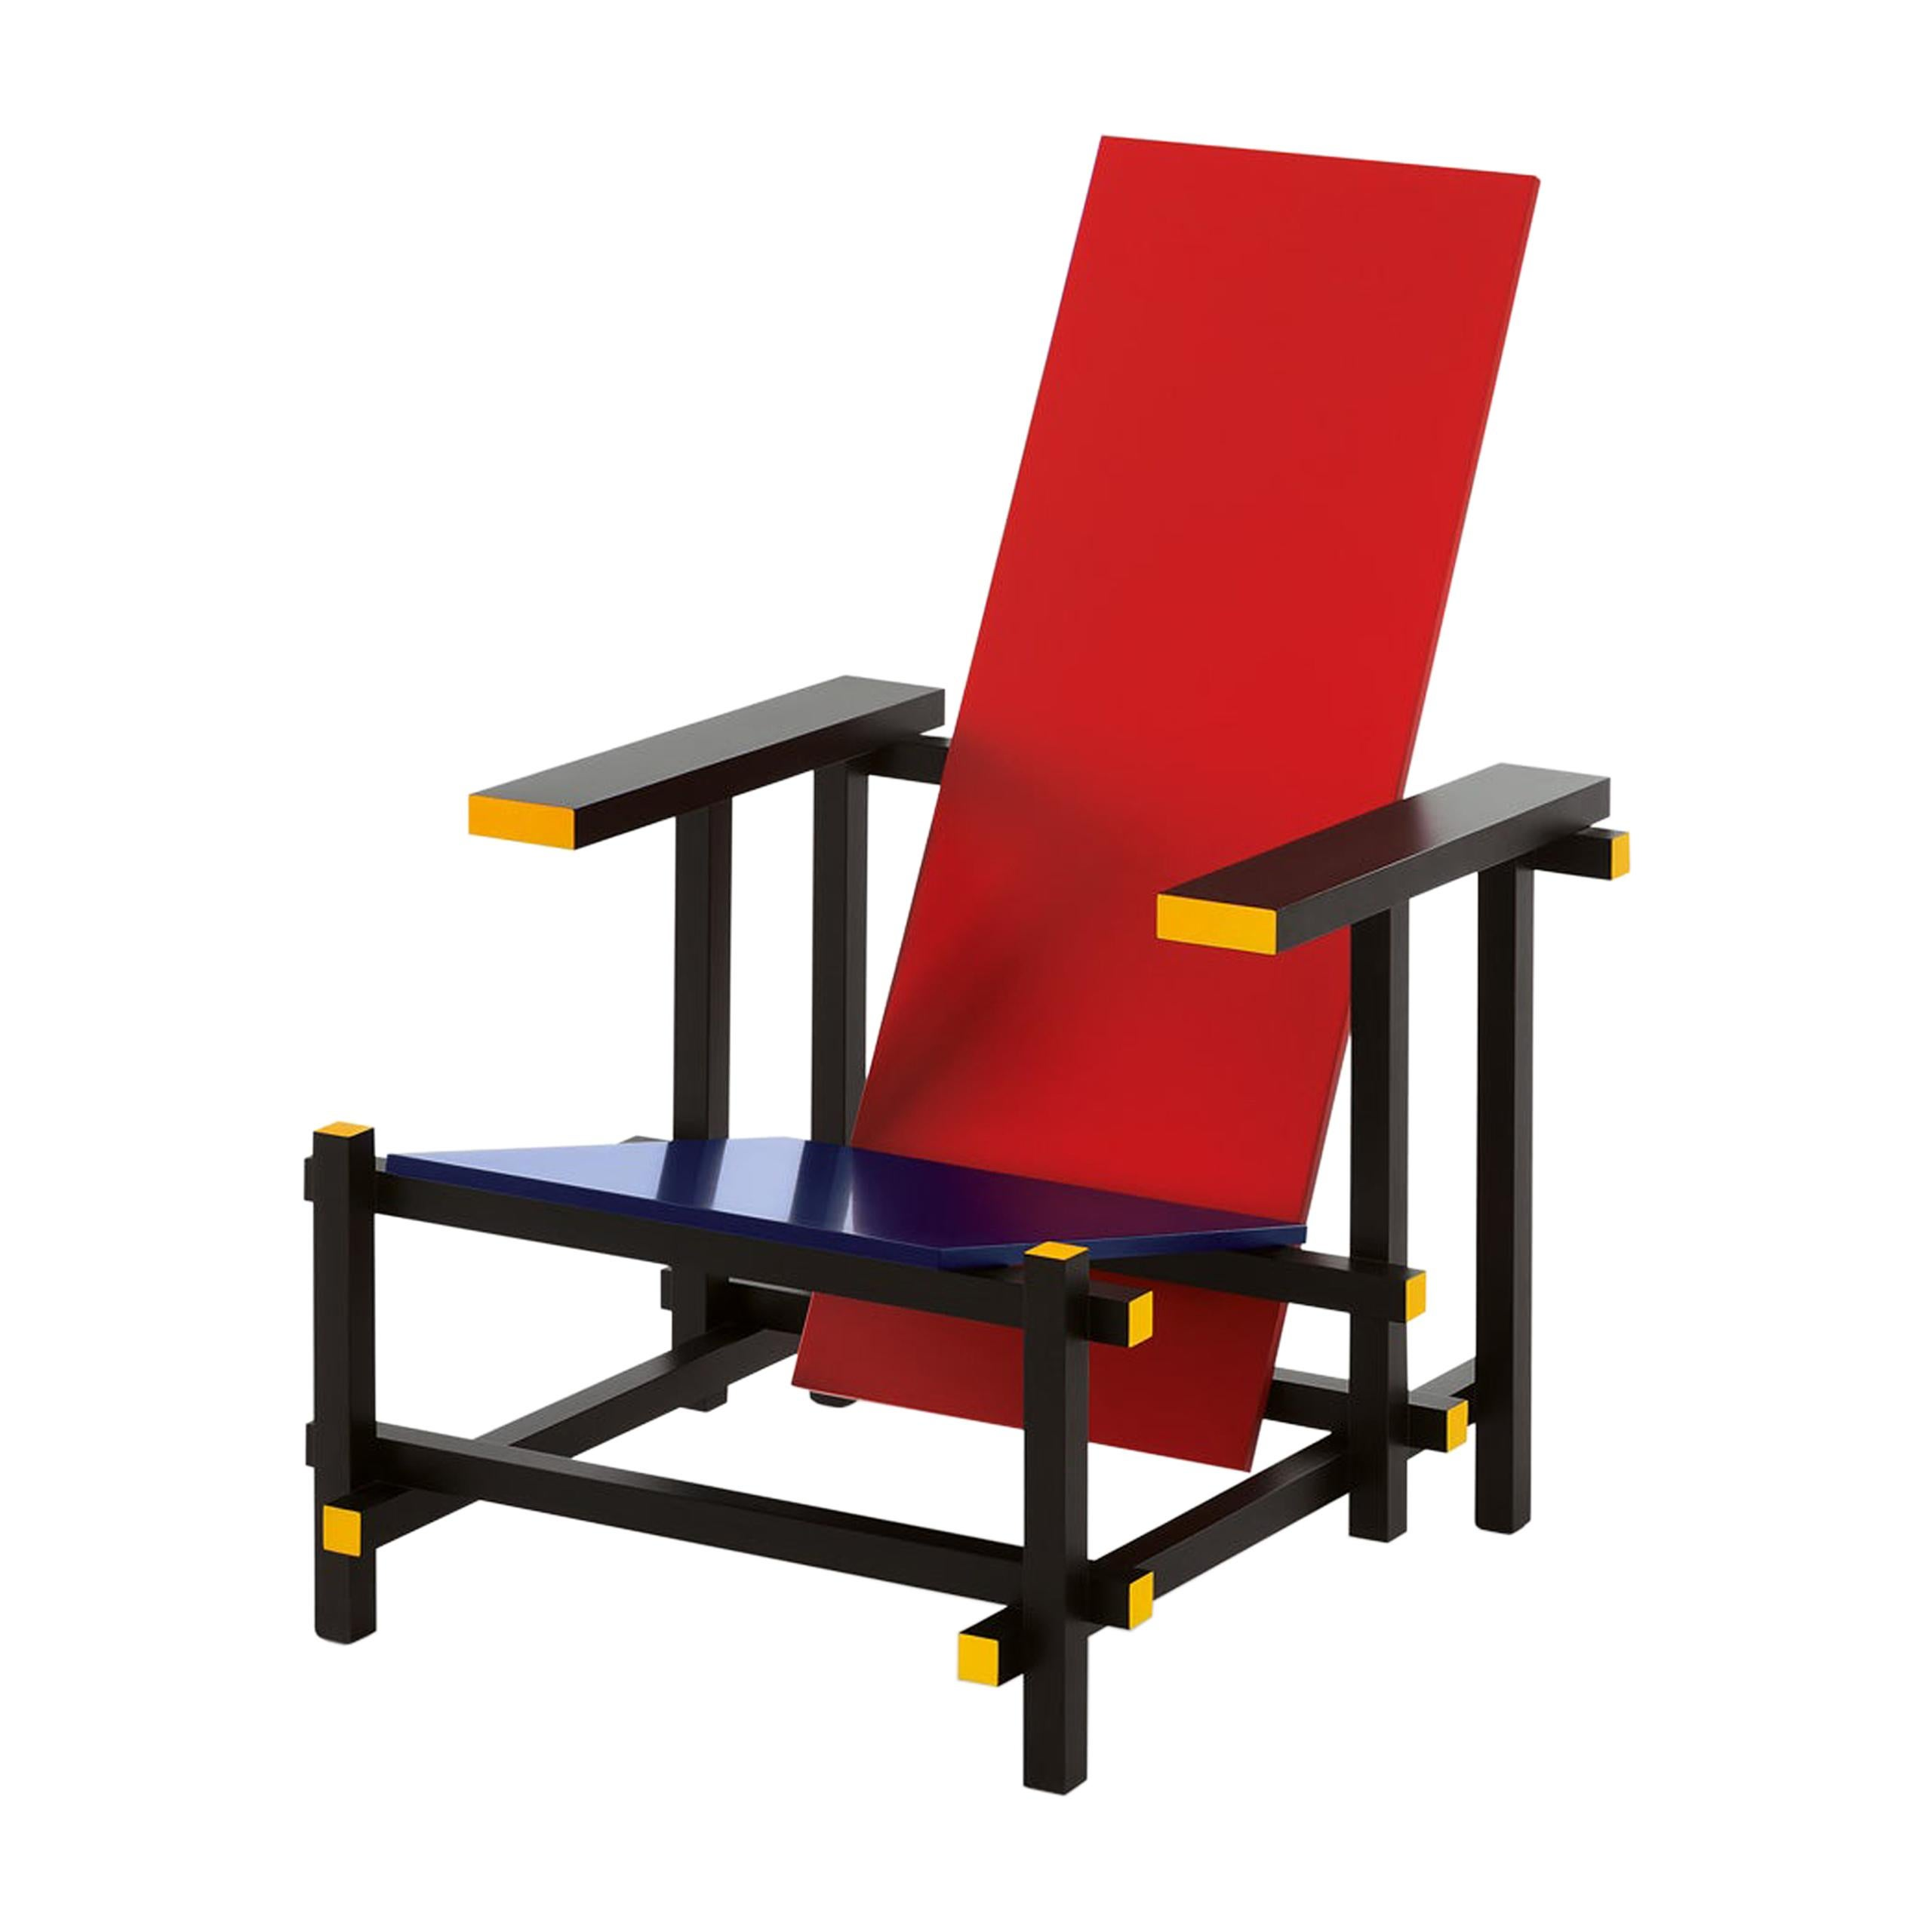 Gerrit Rietveld Red and Blue Chair by Cassina